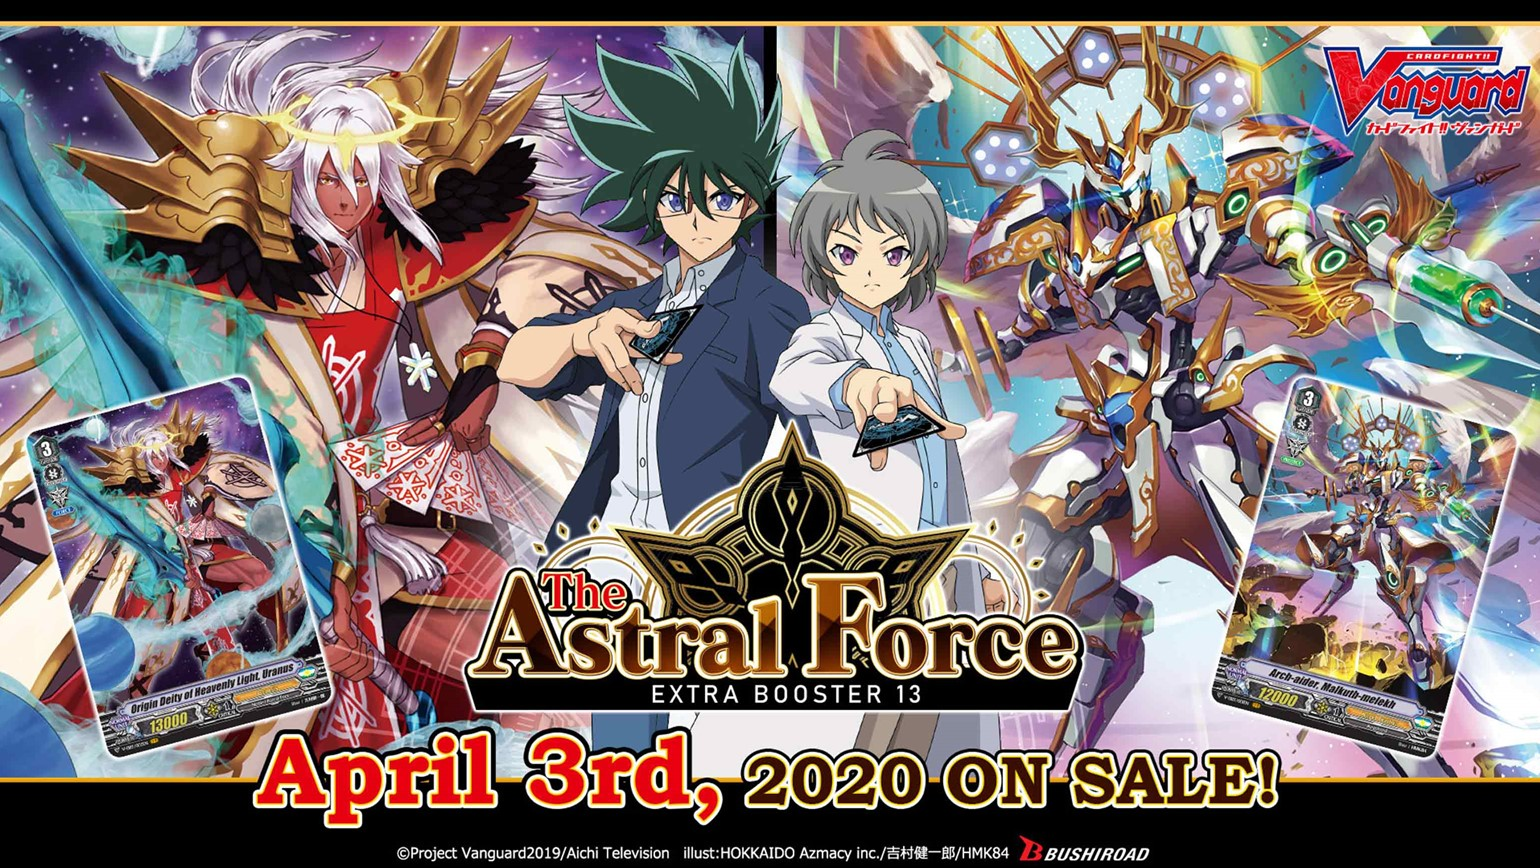 English Edition Cardfight!! Vanguard Extra Booster 13: The Astral Force Coming April 3rd